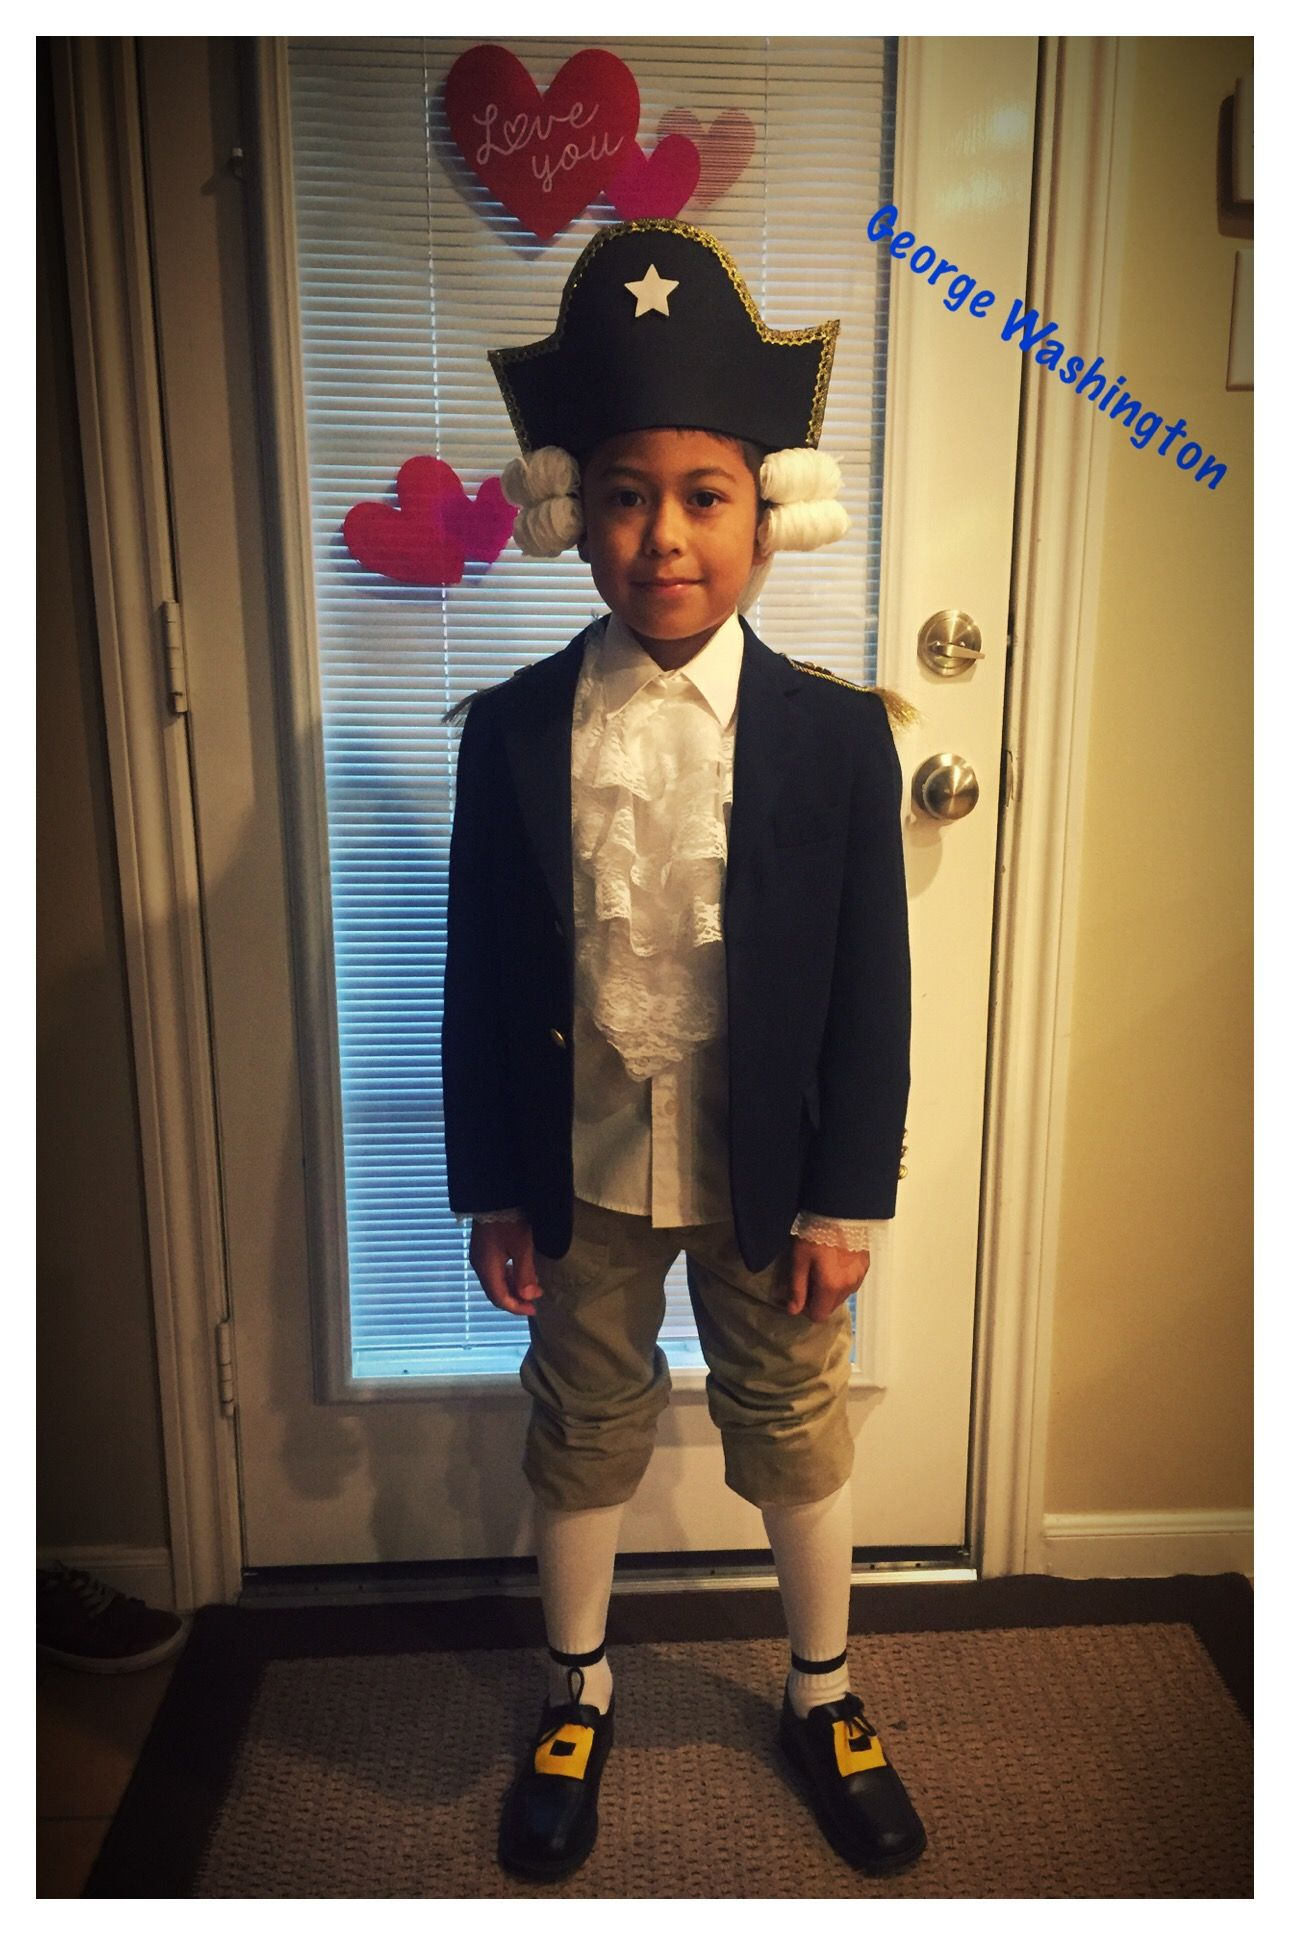 Thomas jefferson costume ideas google search diy pinterest thomas jefferson costume ideas google search diy pinterest thomas jefferson costumes and school solutioingenieria Image collections